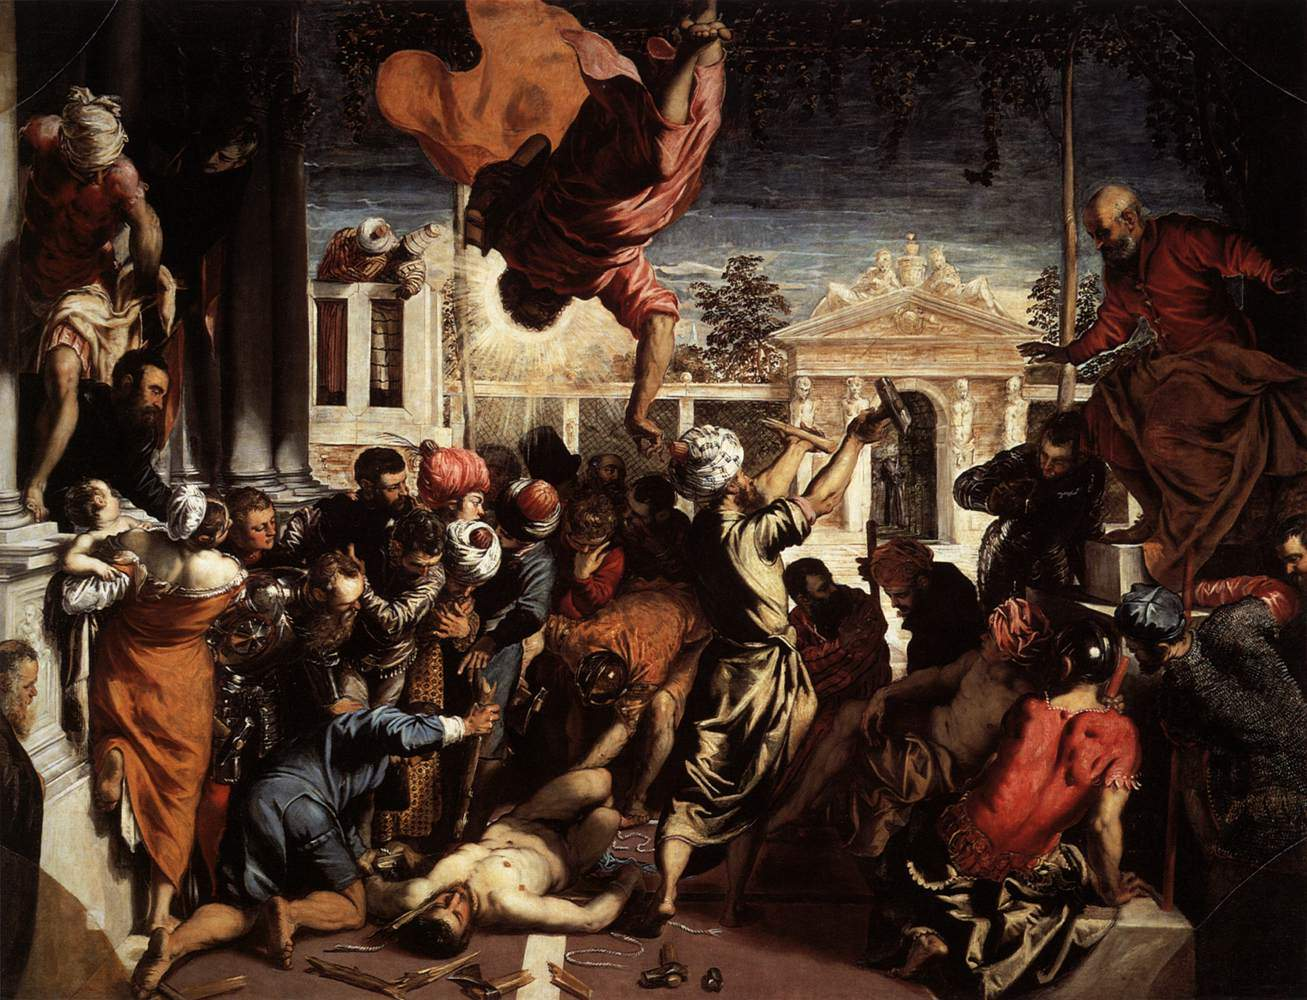 tintoretto_themiracleofstmarkfreeingtheslave